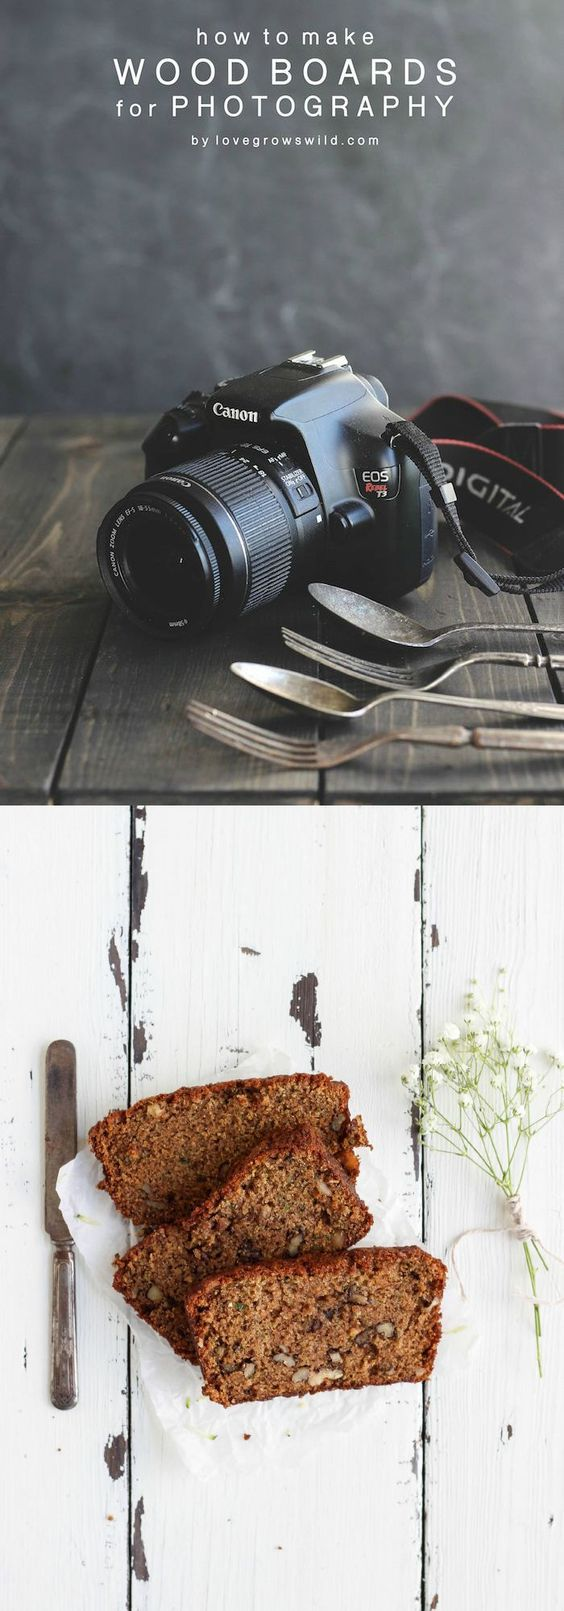 Food Photography  - Magazine cover